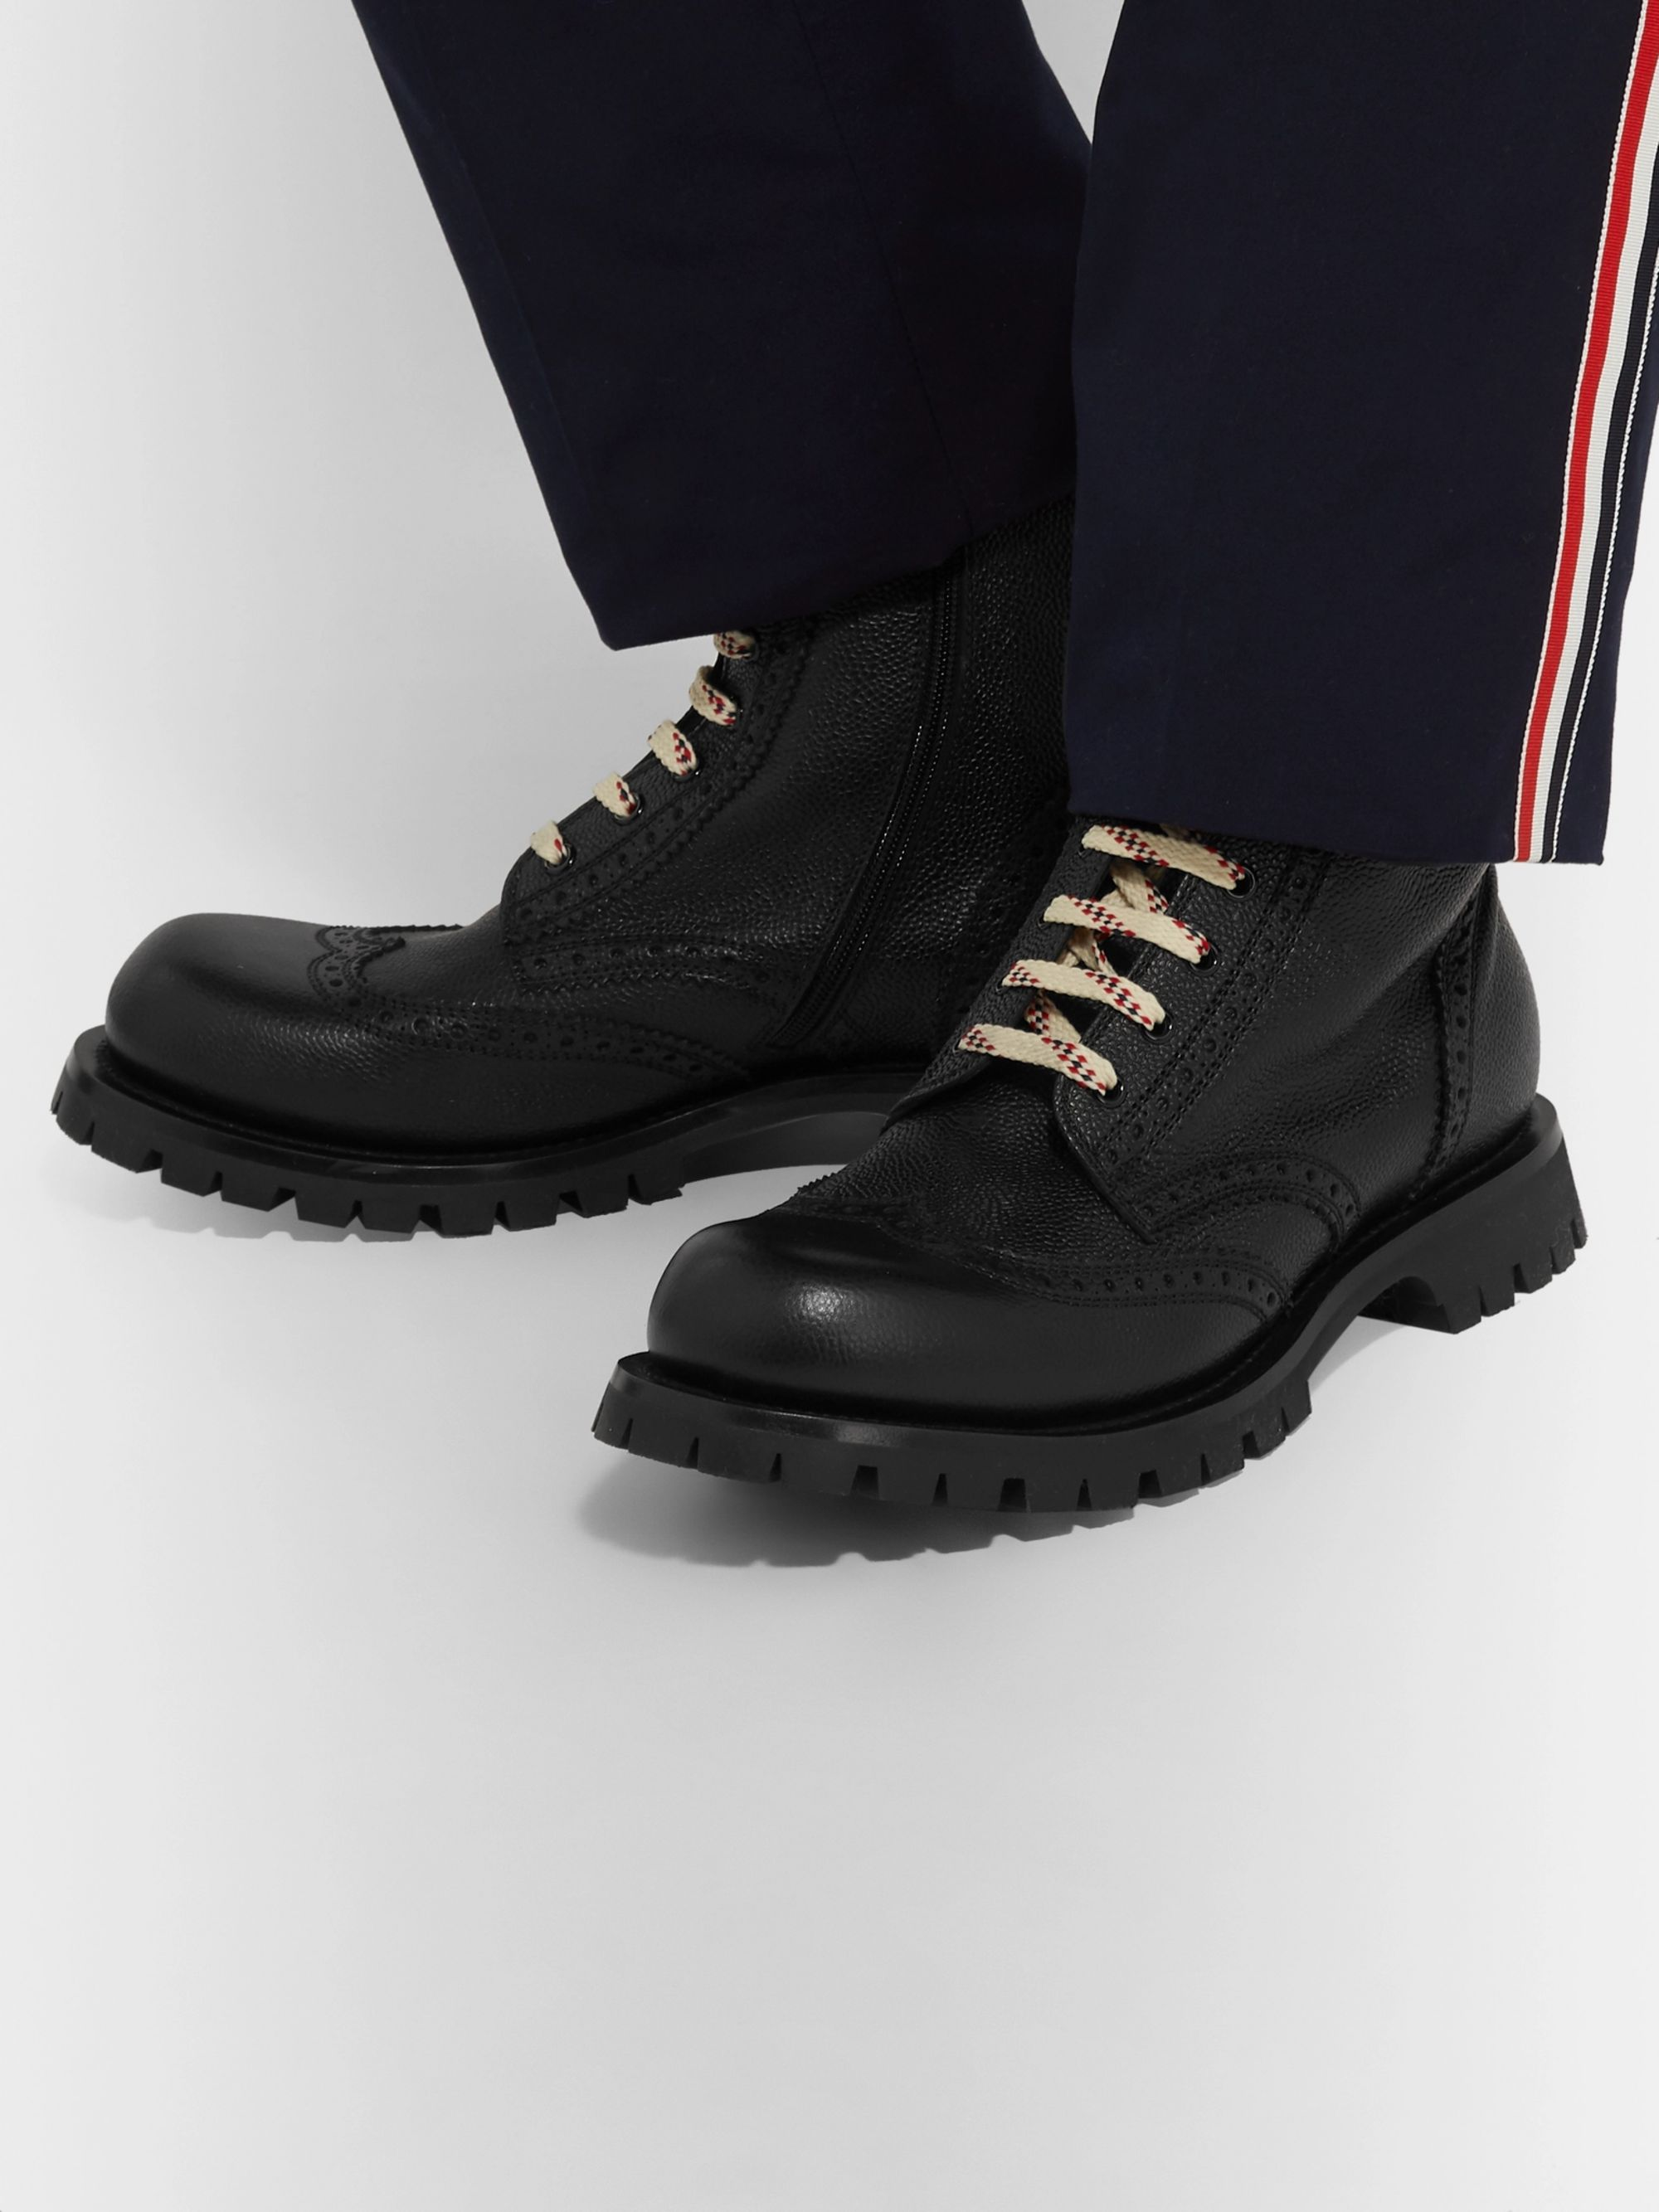 Gucci New Arley Full-Grain Leather Brogue Boots